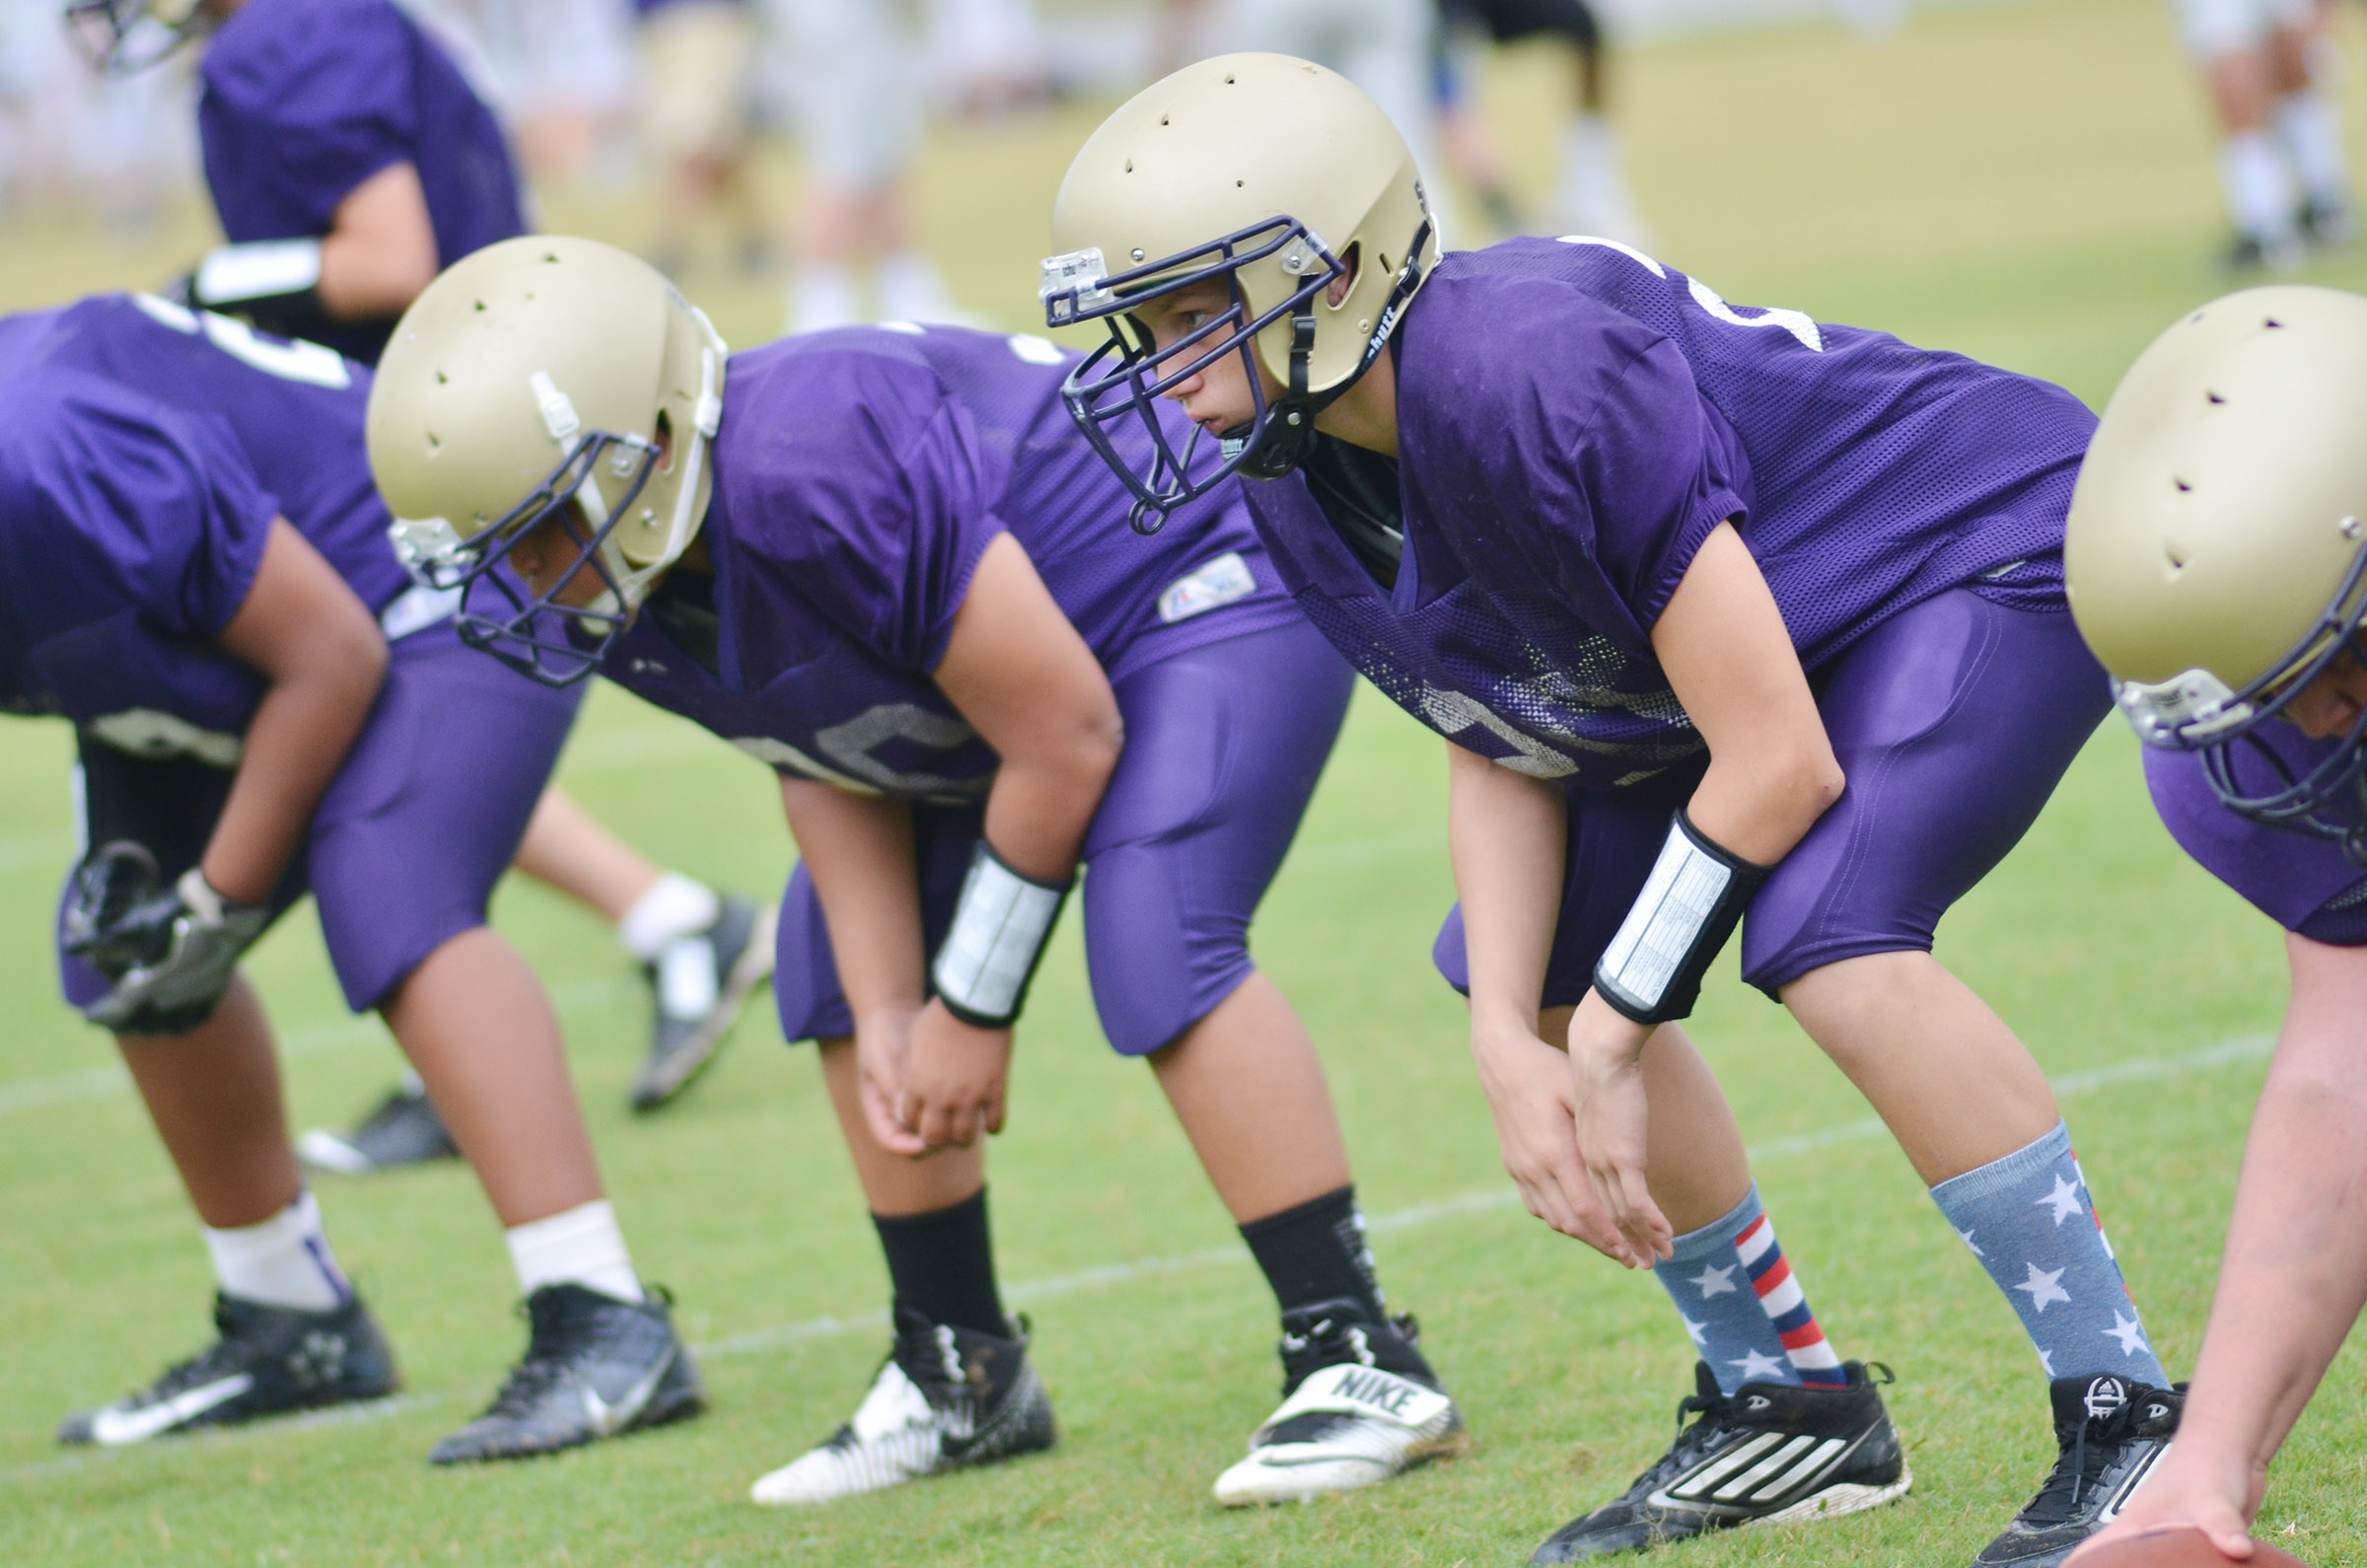 CMS seventh-grader Damon Johnson and his teammates get ready for a play.